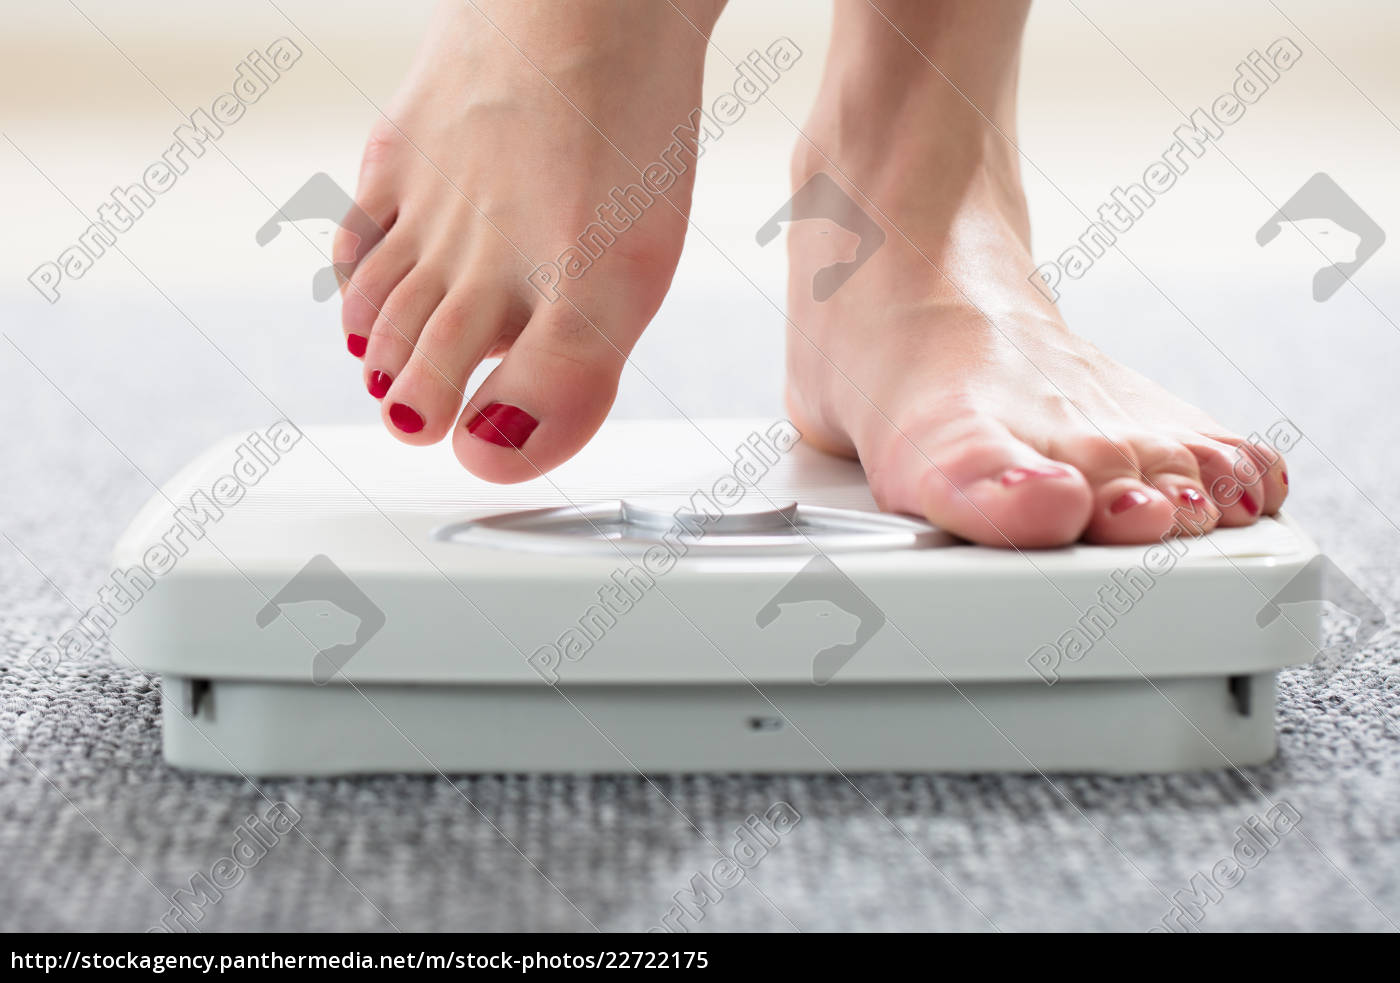 woman's, feet, on, scale - 22722175